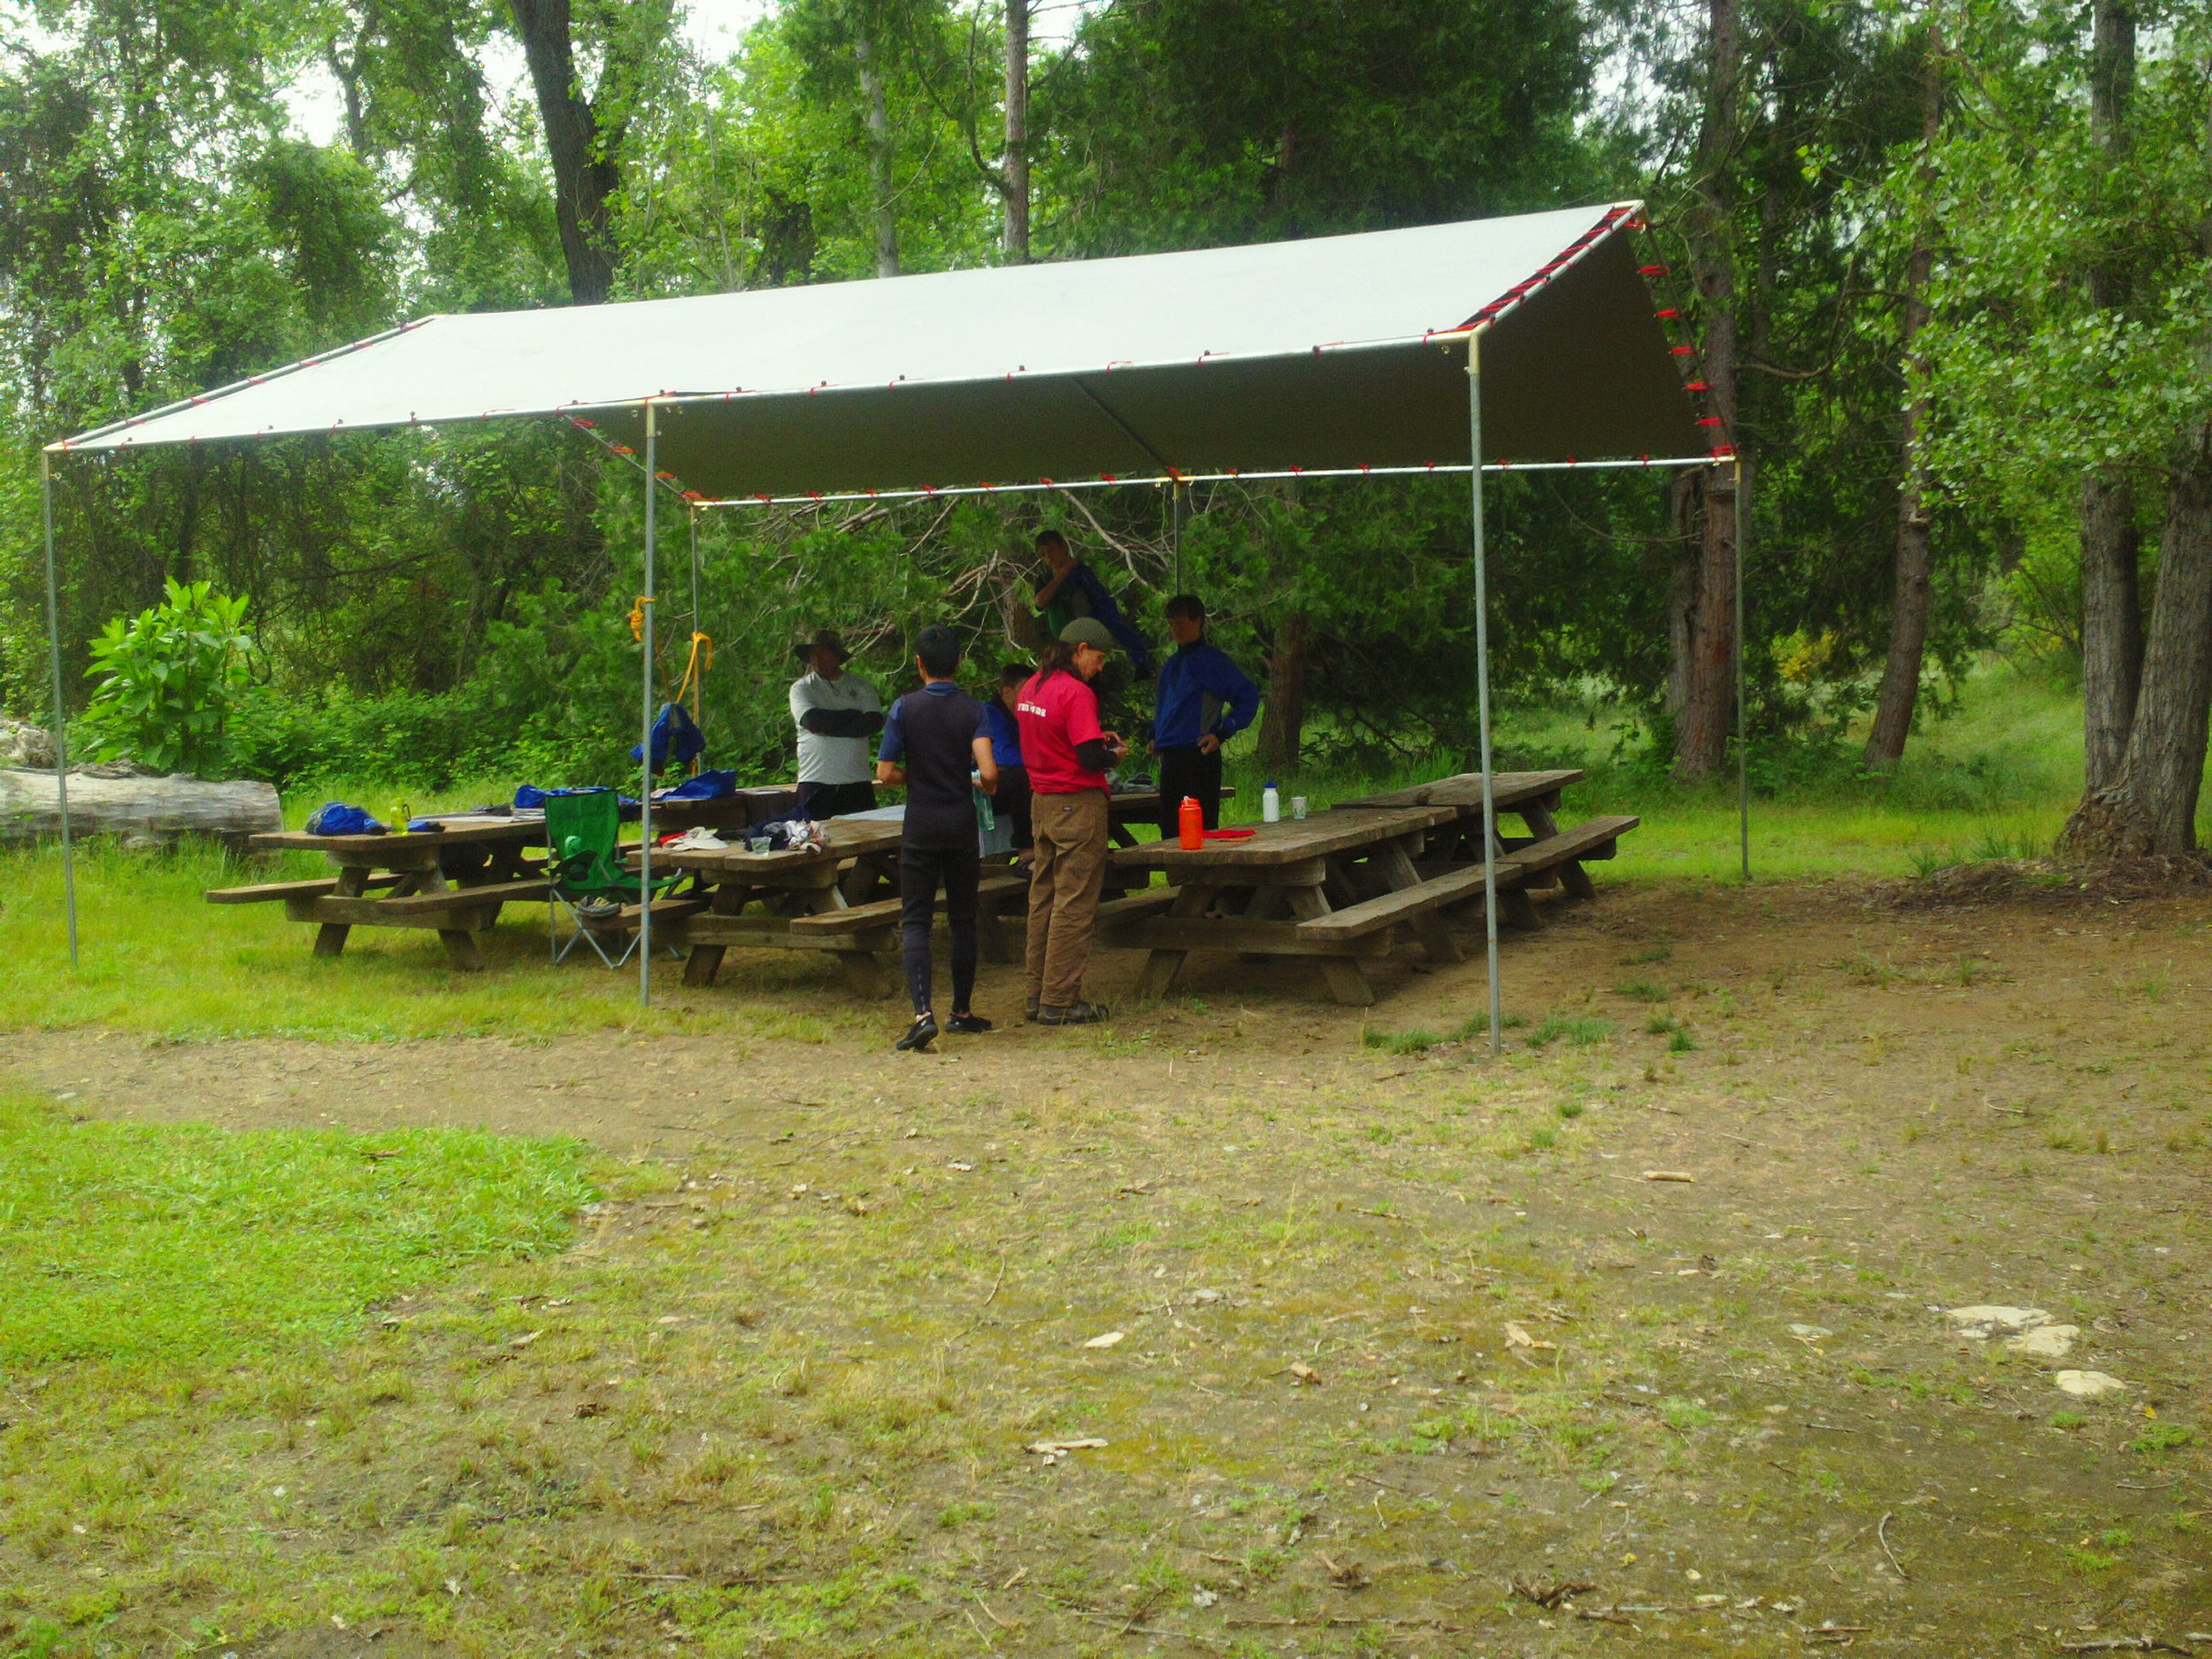 Caterered camping is our specialty!